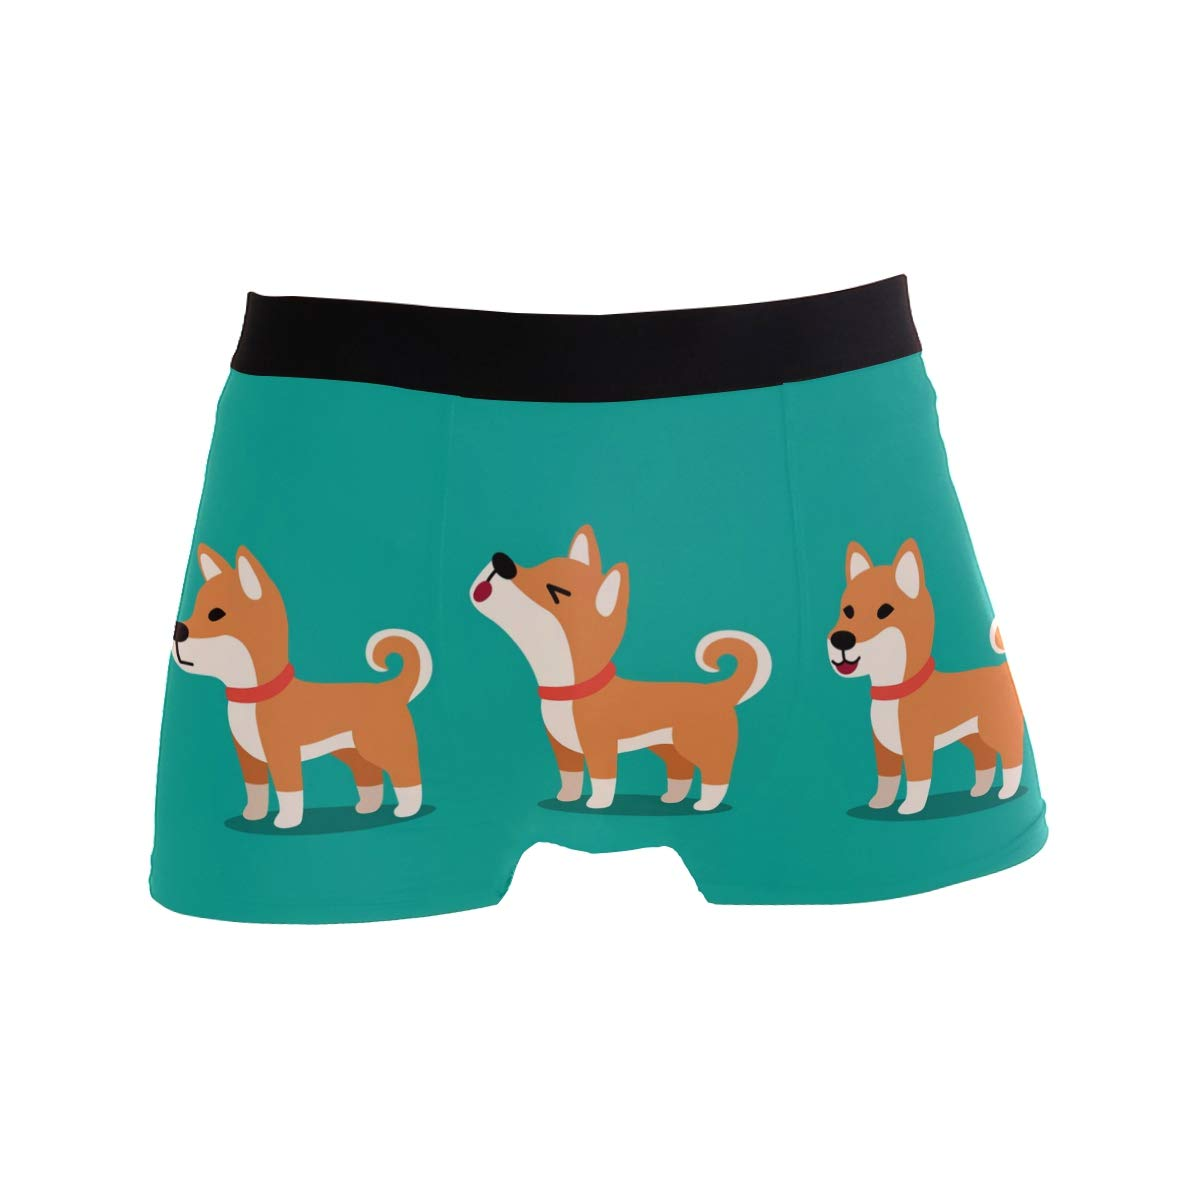 SUABO Men Boxer Briefs Polyester Underwear Men 2 Pack Boxer Briefs for Valentines Gift with Dogs Pattern